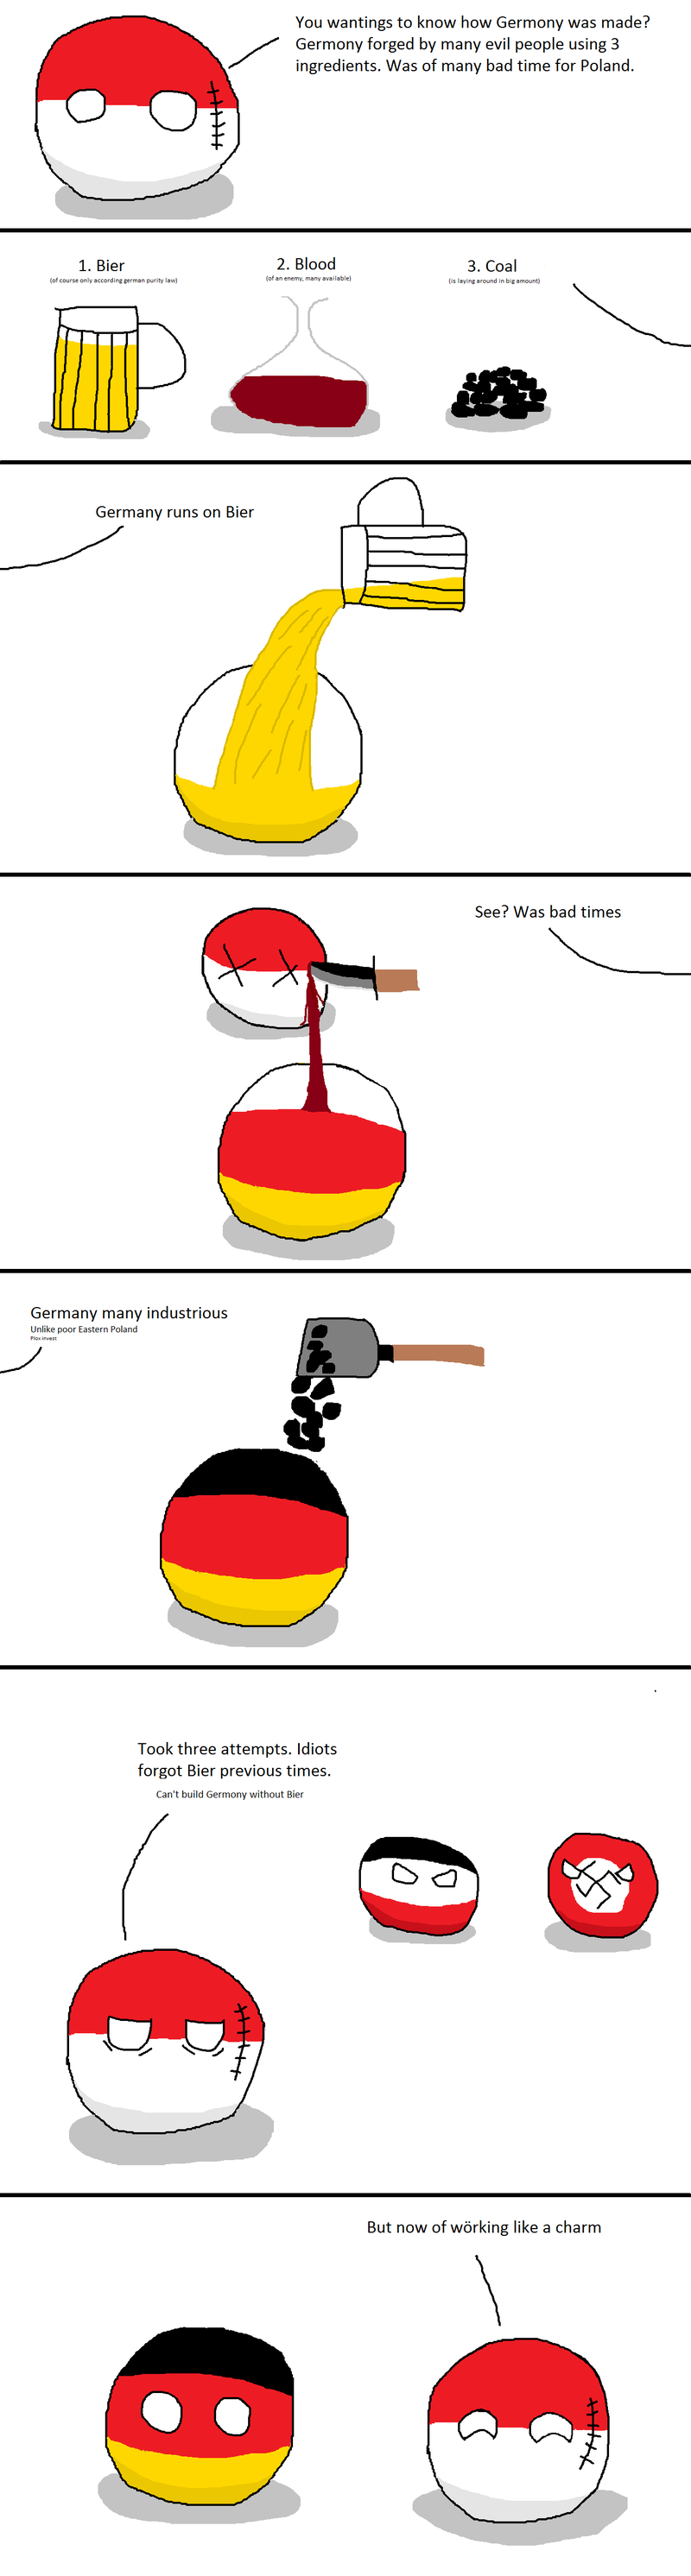 Daily Polandball: if only we knew sooner